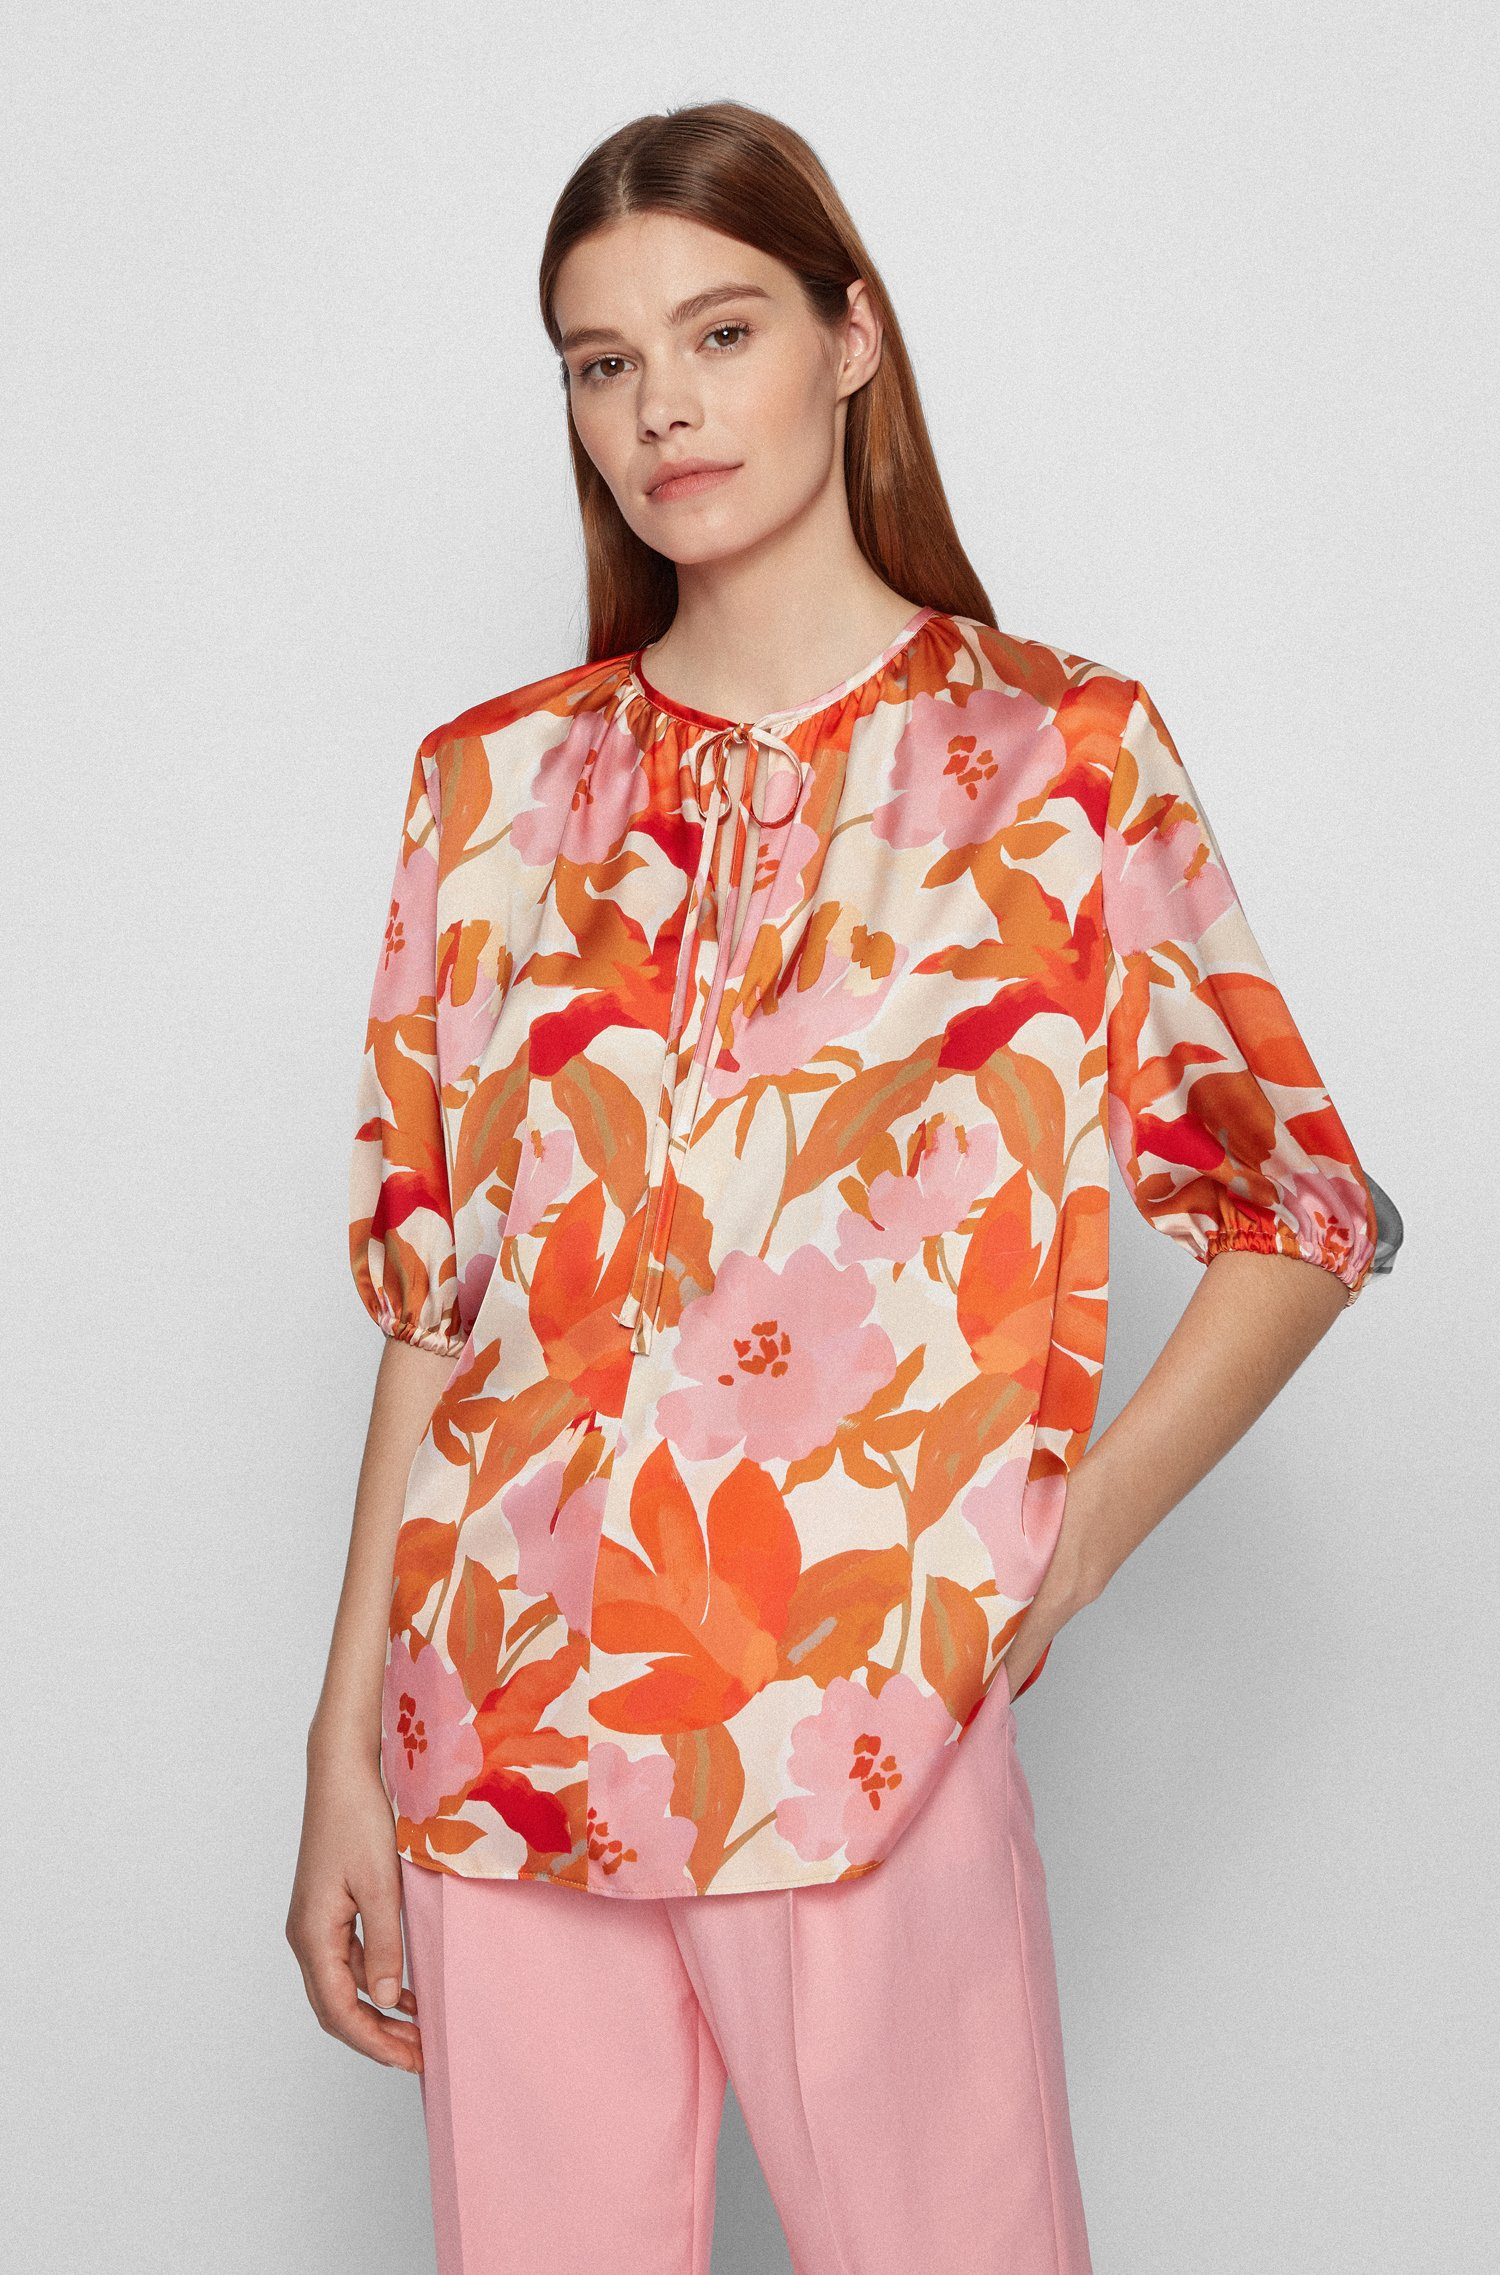 Floral-print top with ruched neckline, Patterned